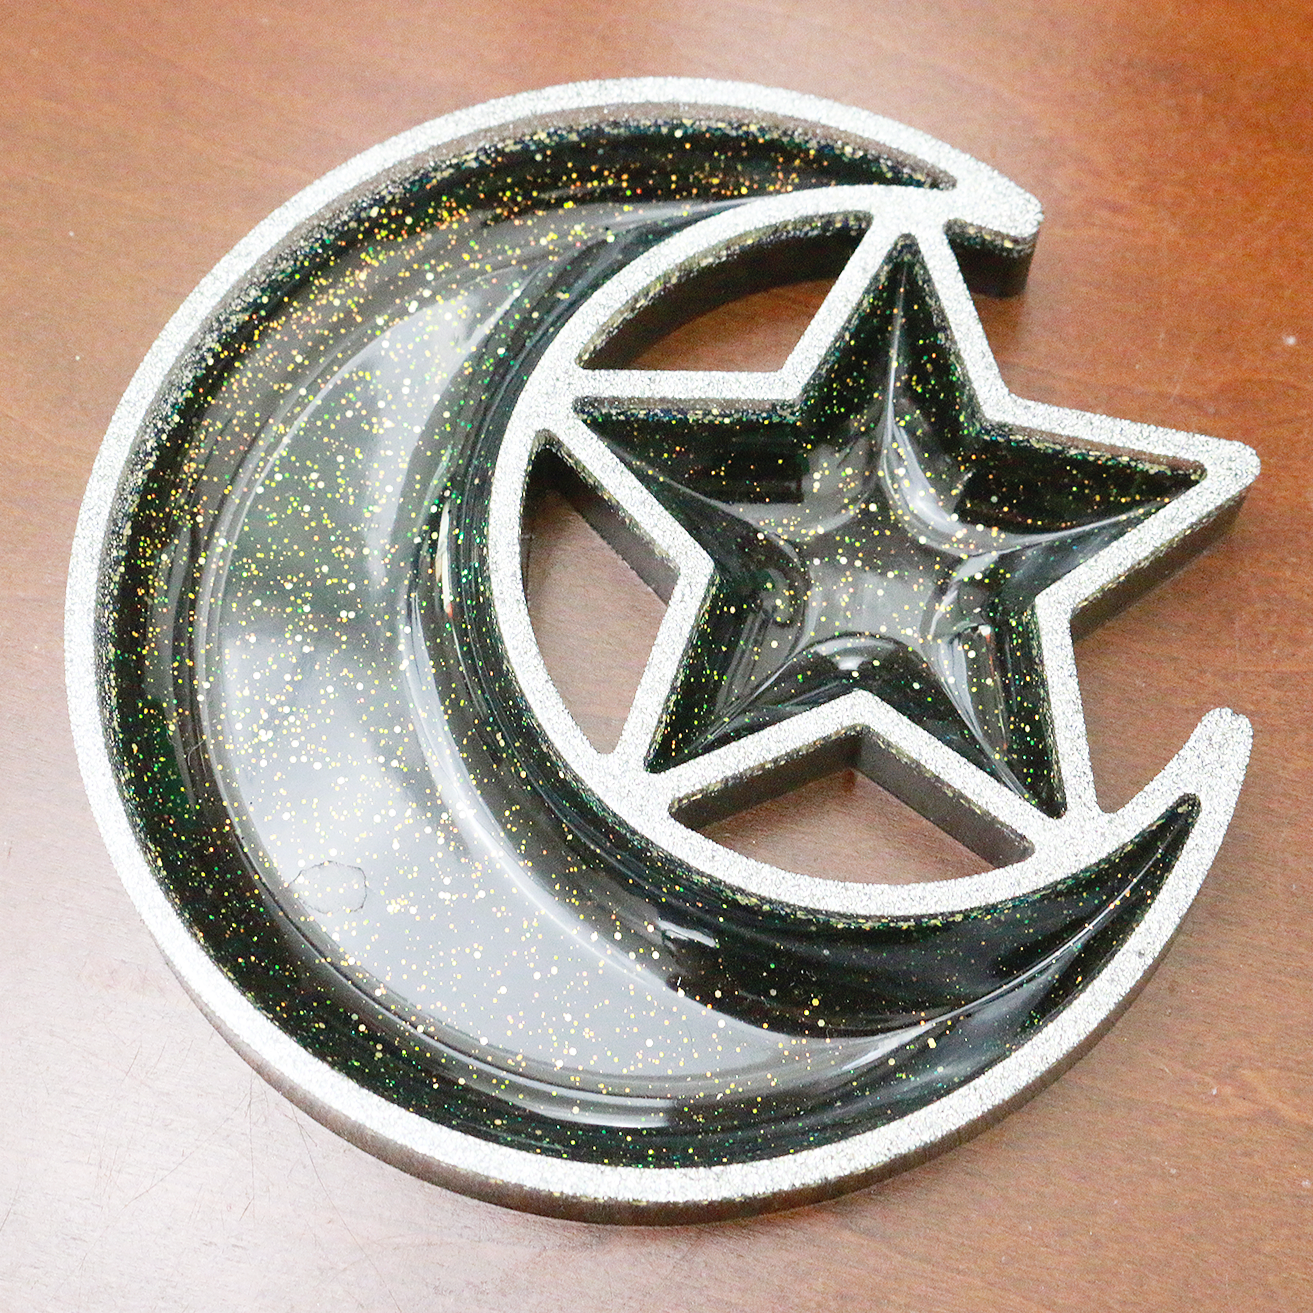 Black Tie Glitter Moon & Star Dish/Tray